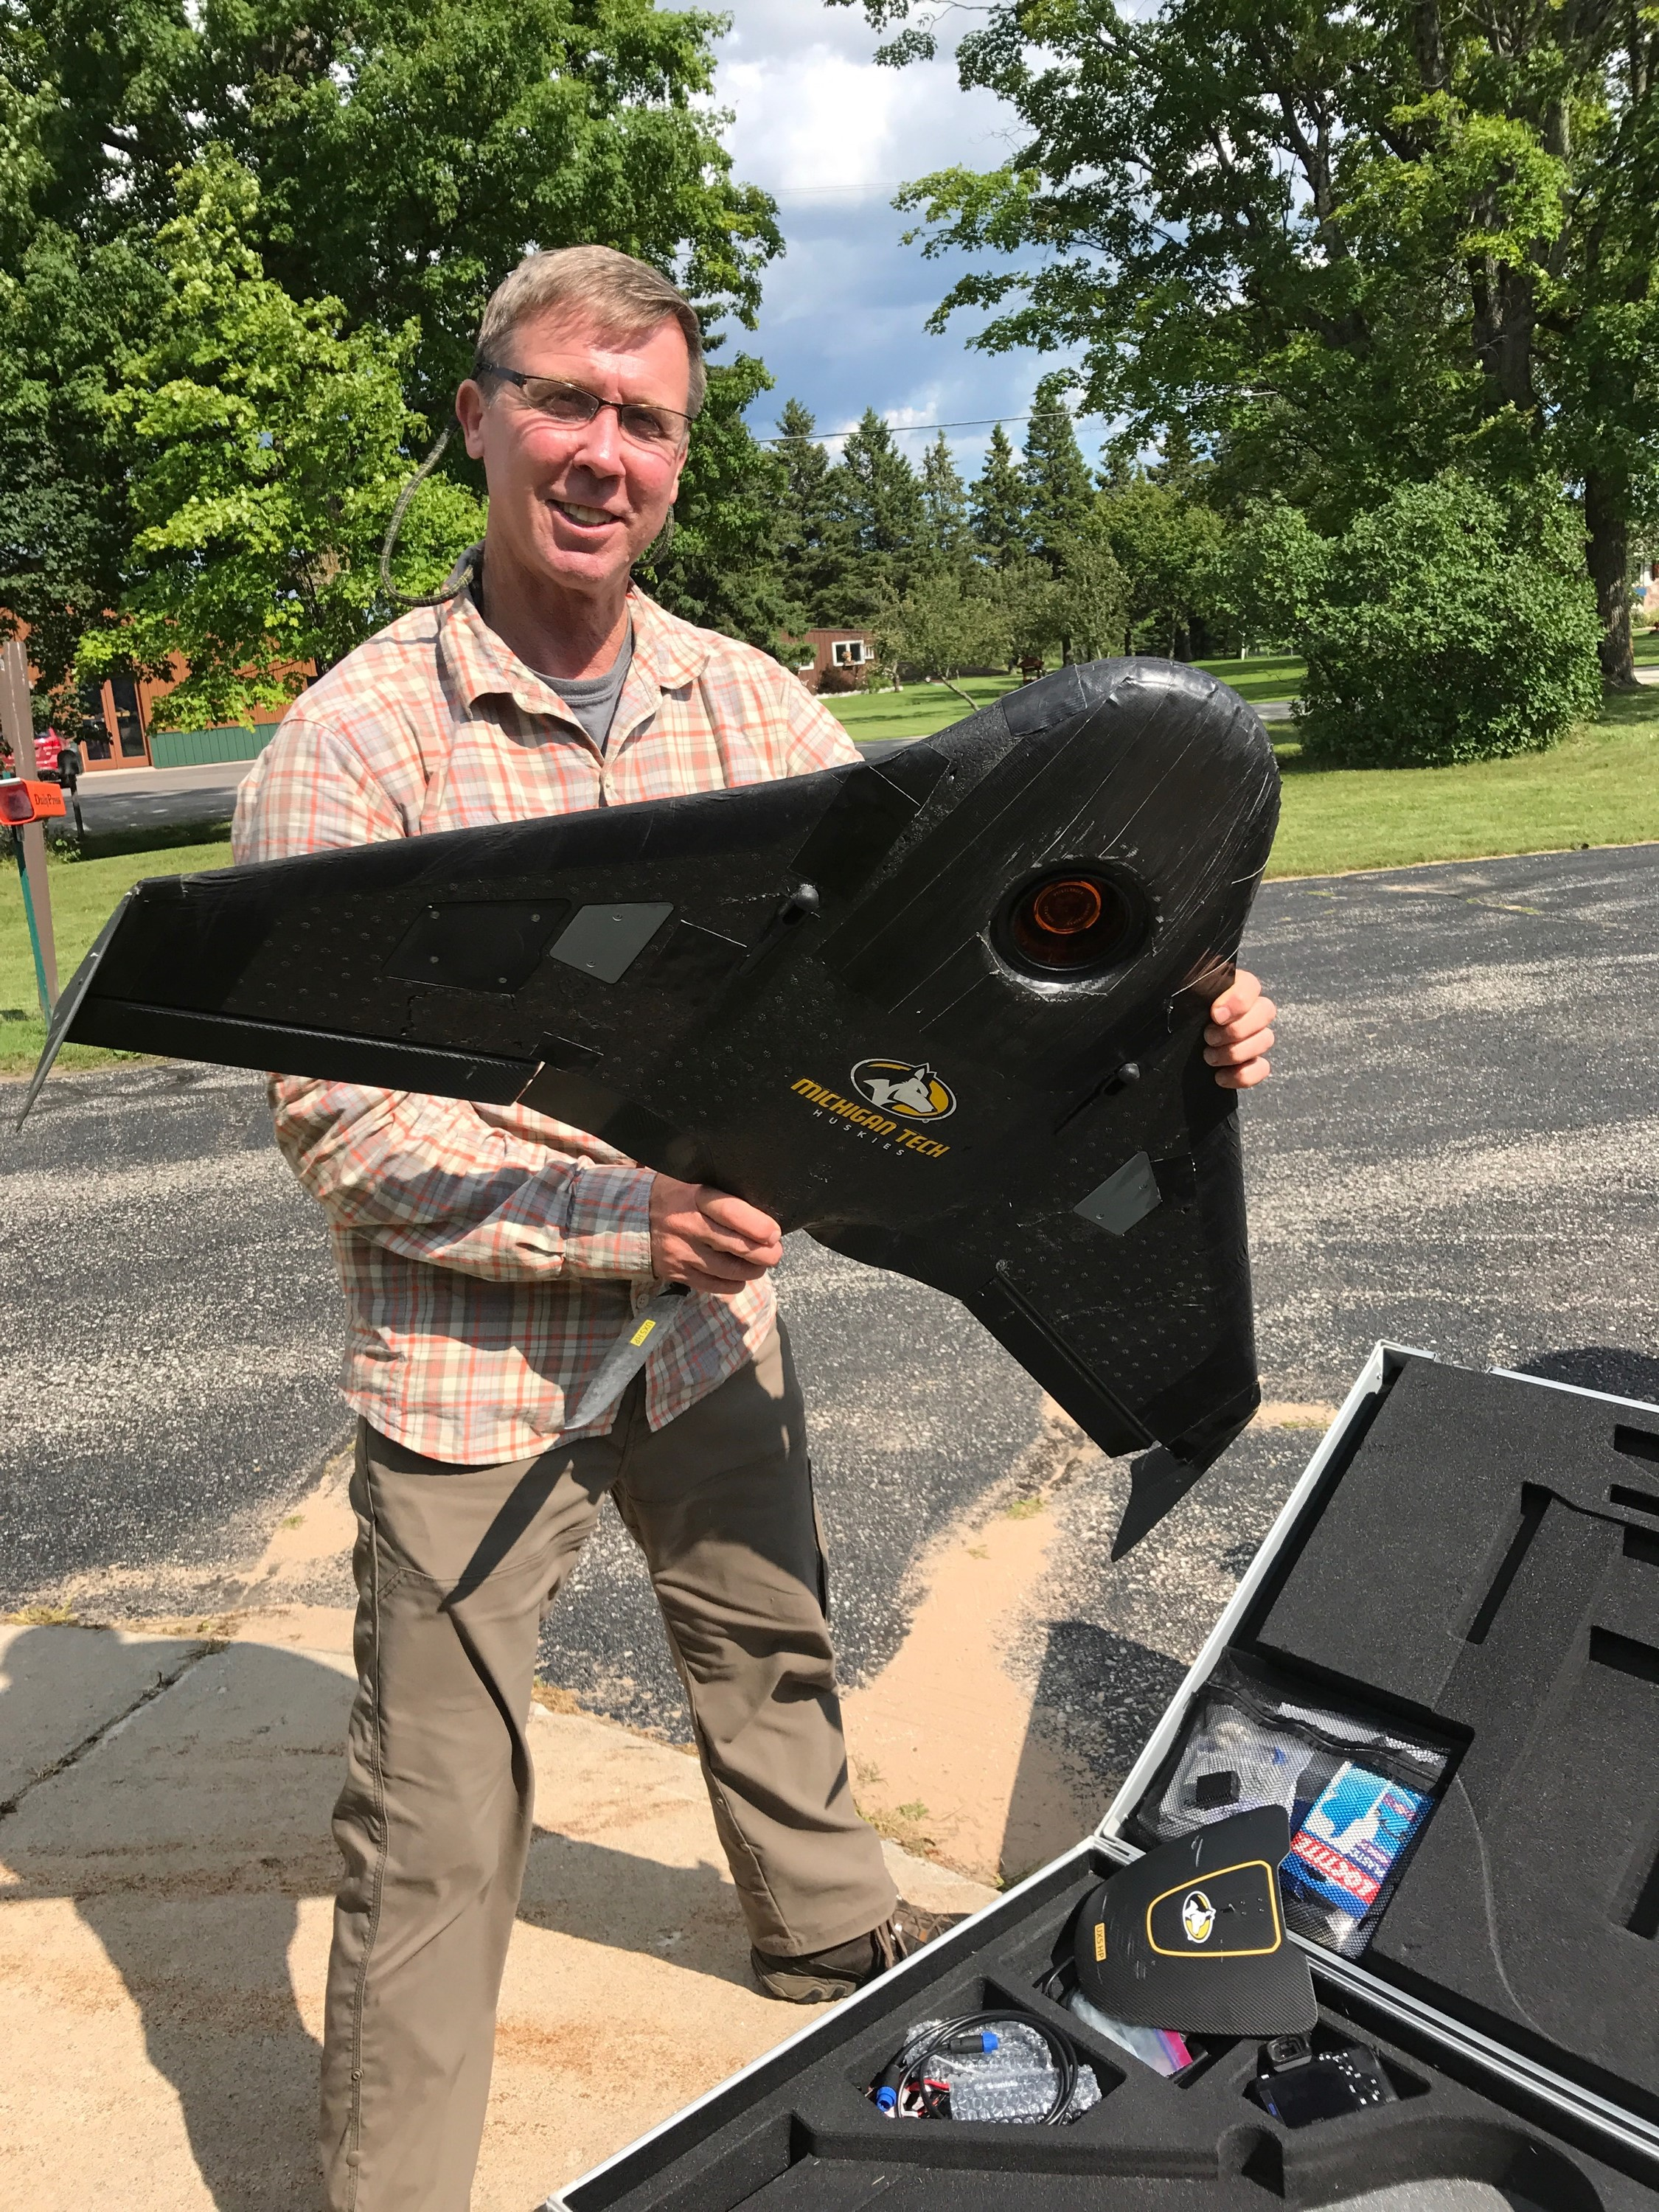 Dr. Curtis Edson, Assistant Professor of Remote Sensing and Geographic Information Systems at MTech,hold the UAV used in the drone flights over the Hiawatha National Forest.